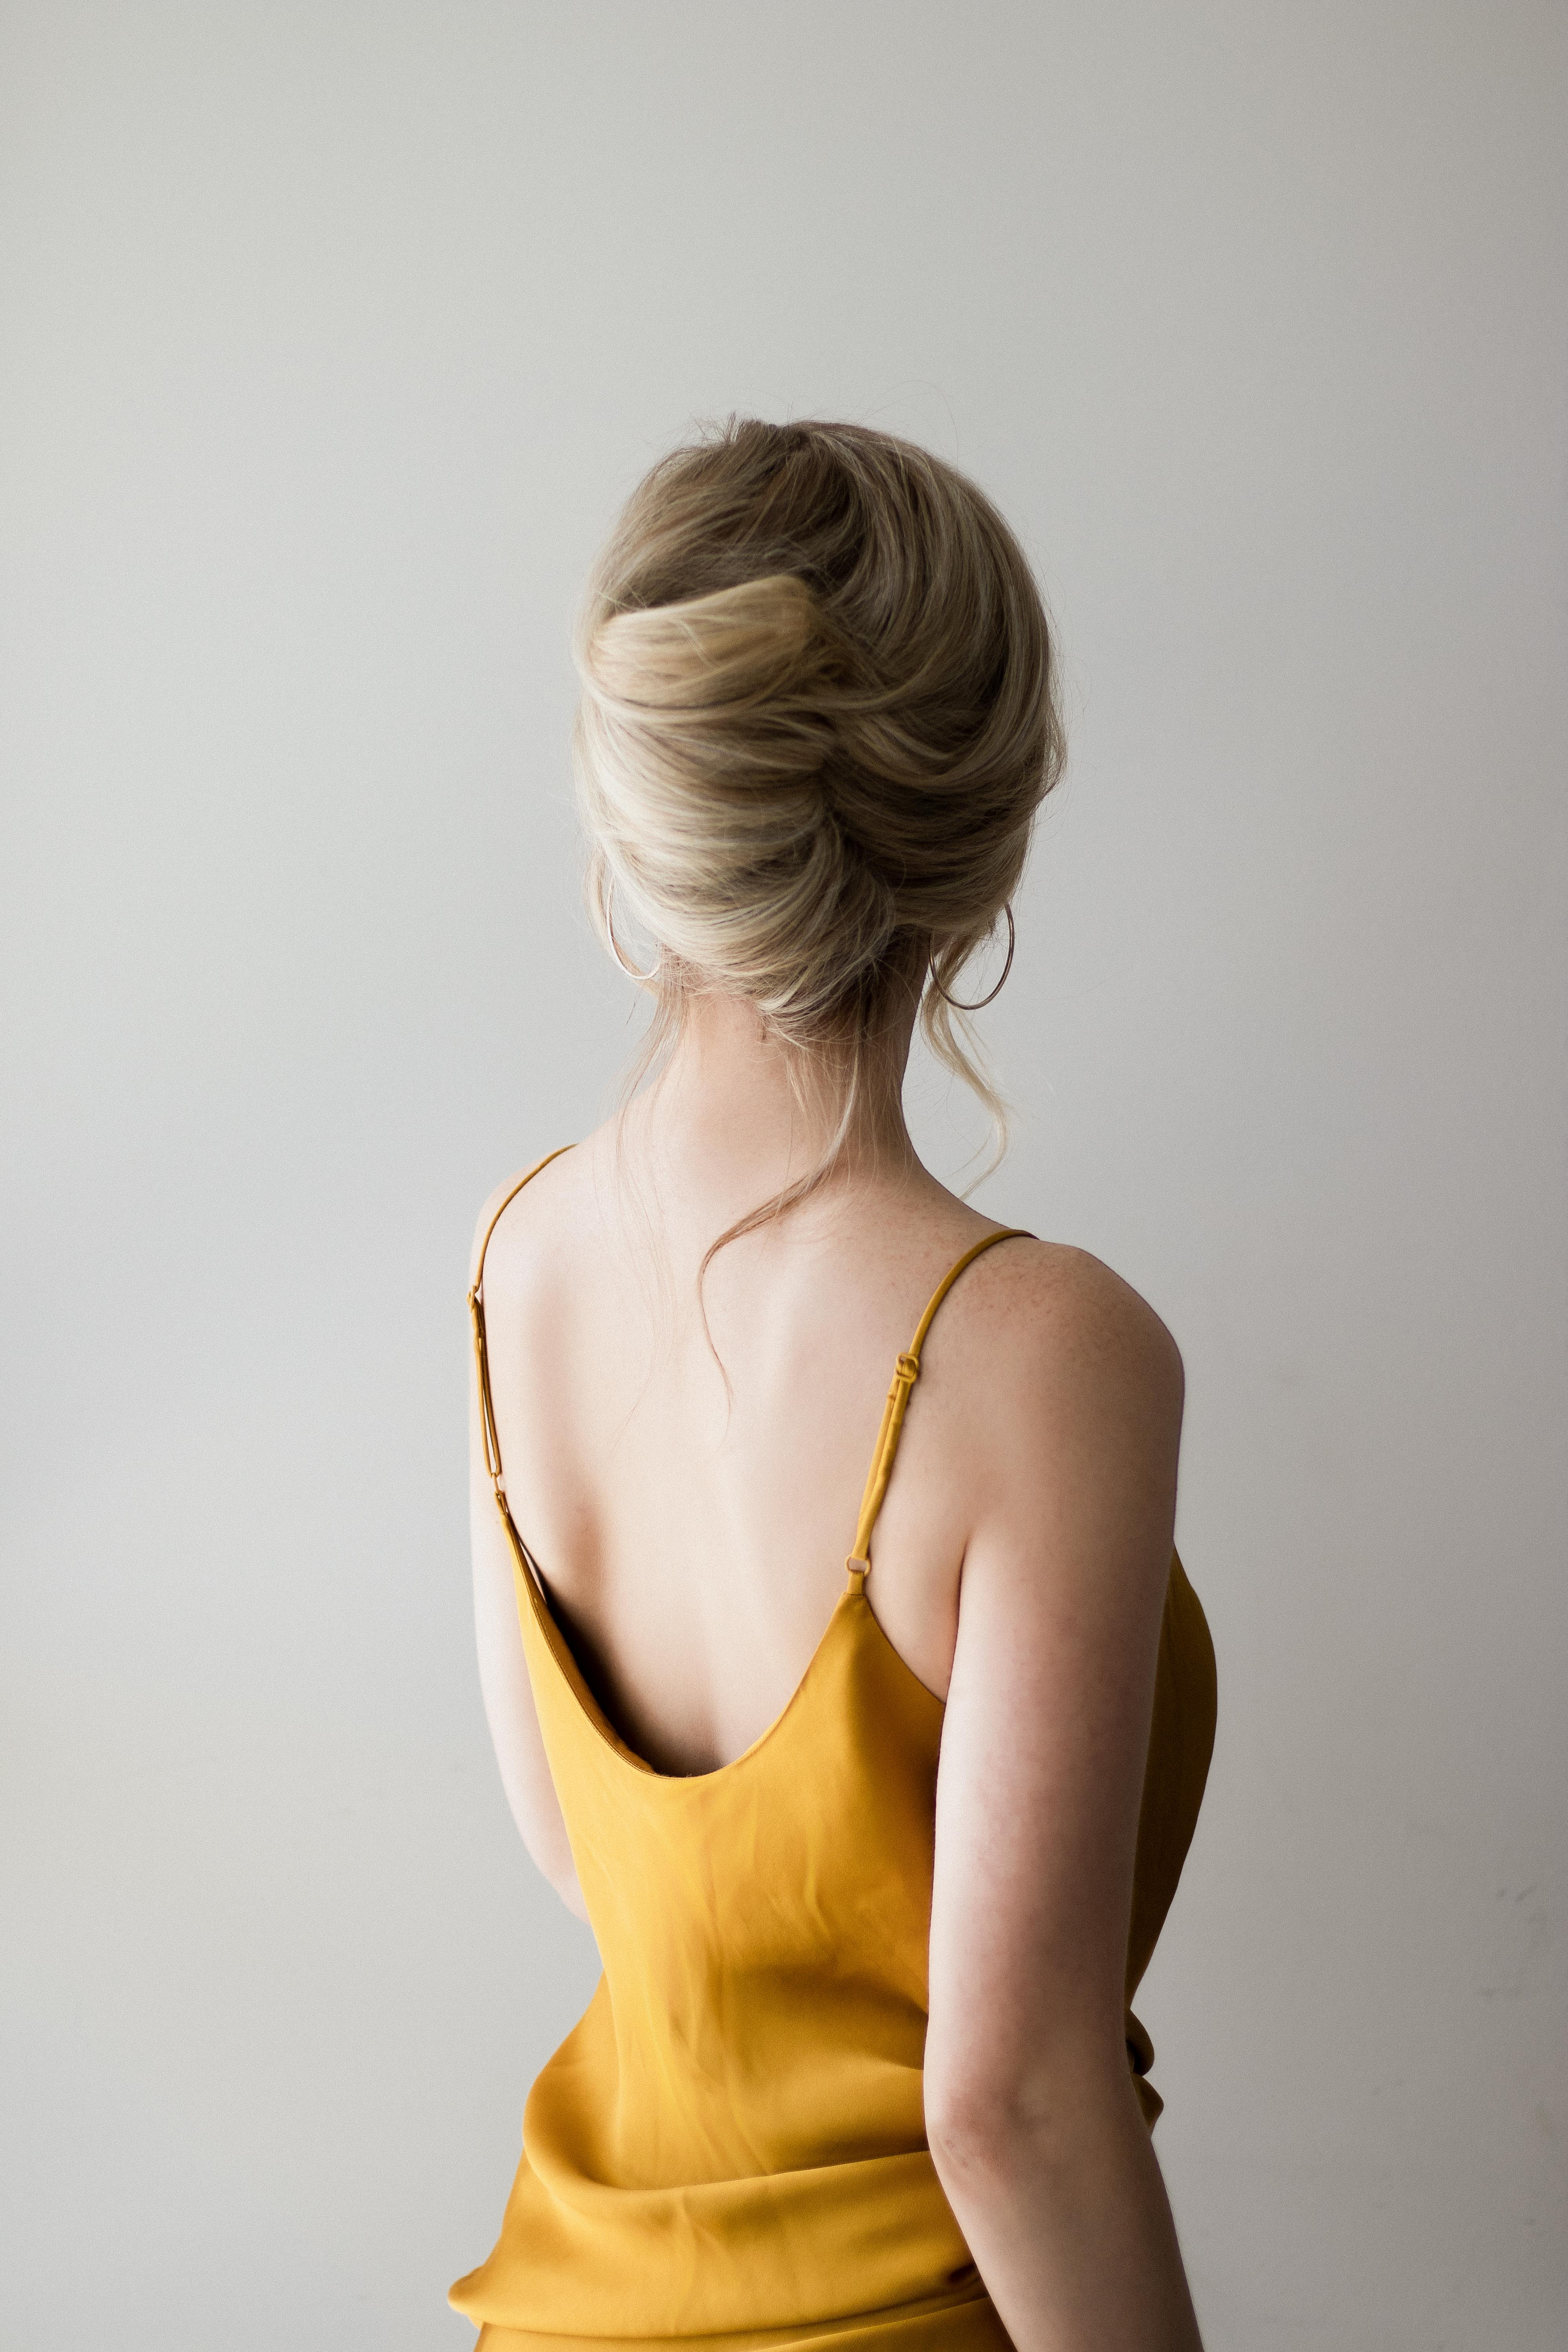 FRENCH TWIST HAIR TUTORIAL, THE PERFECT PROM HAIRSTYLE | www.alexgaboury.com